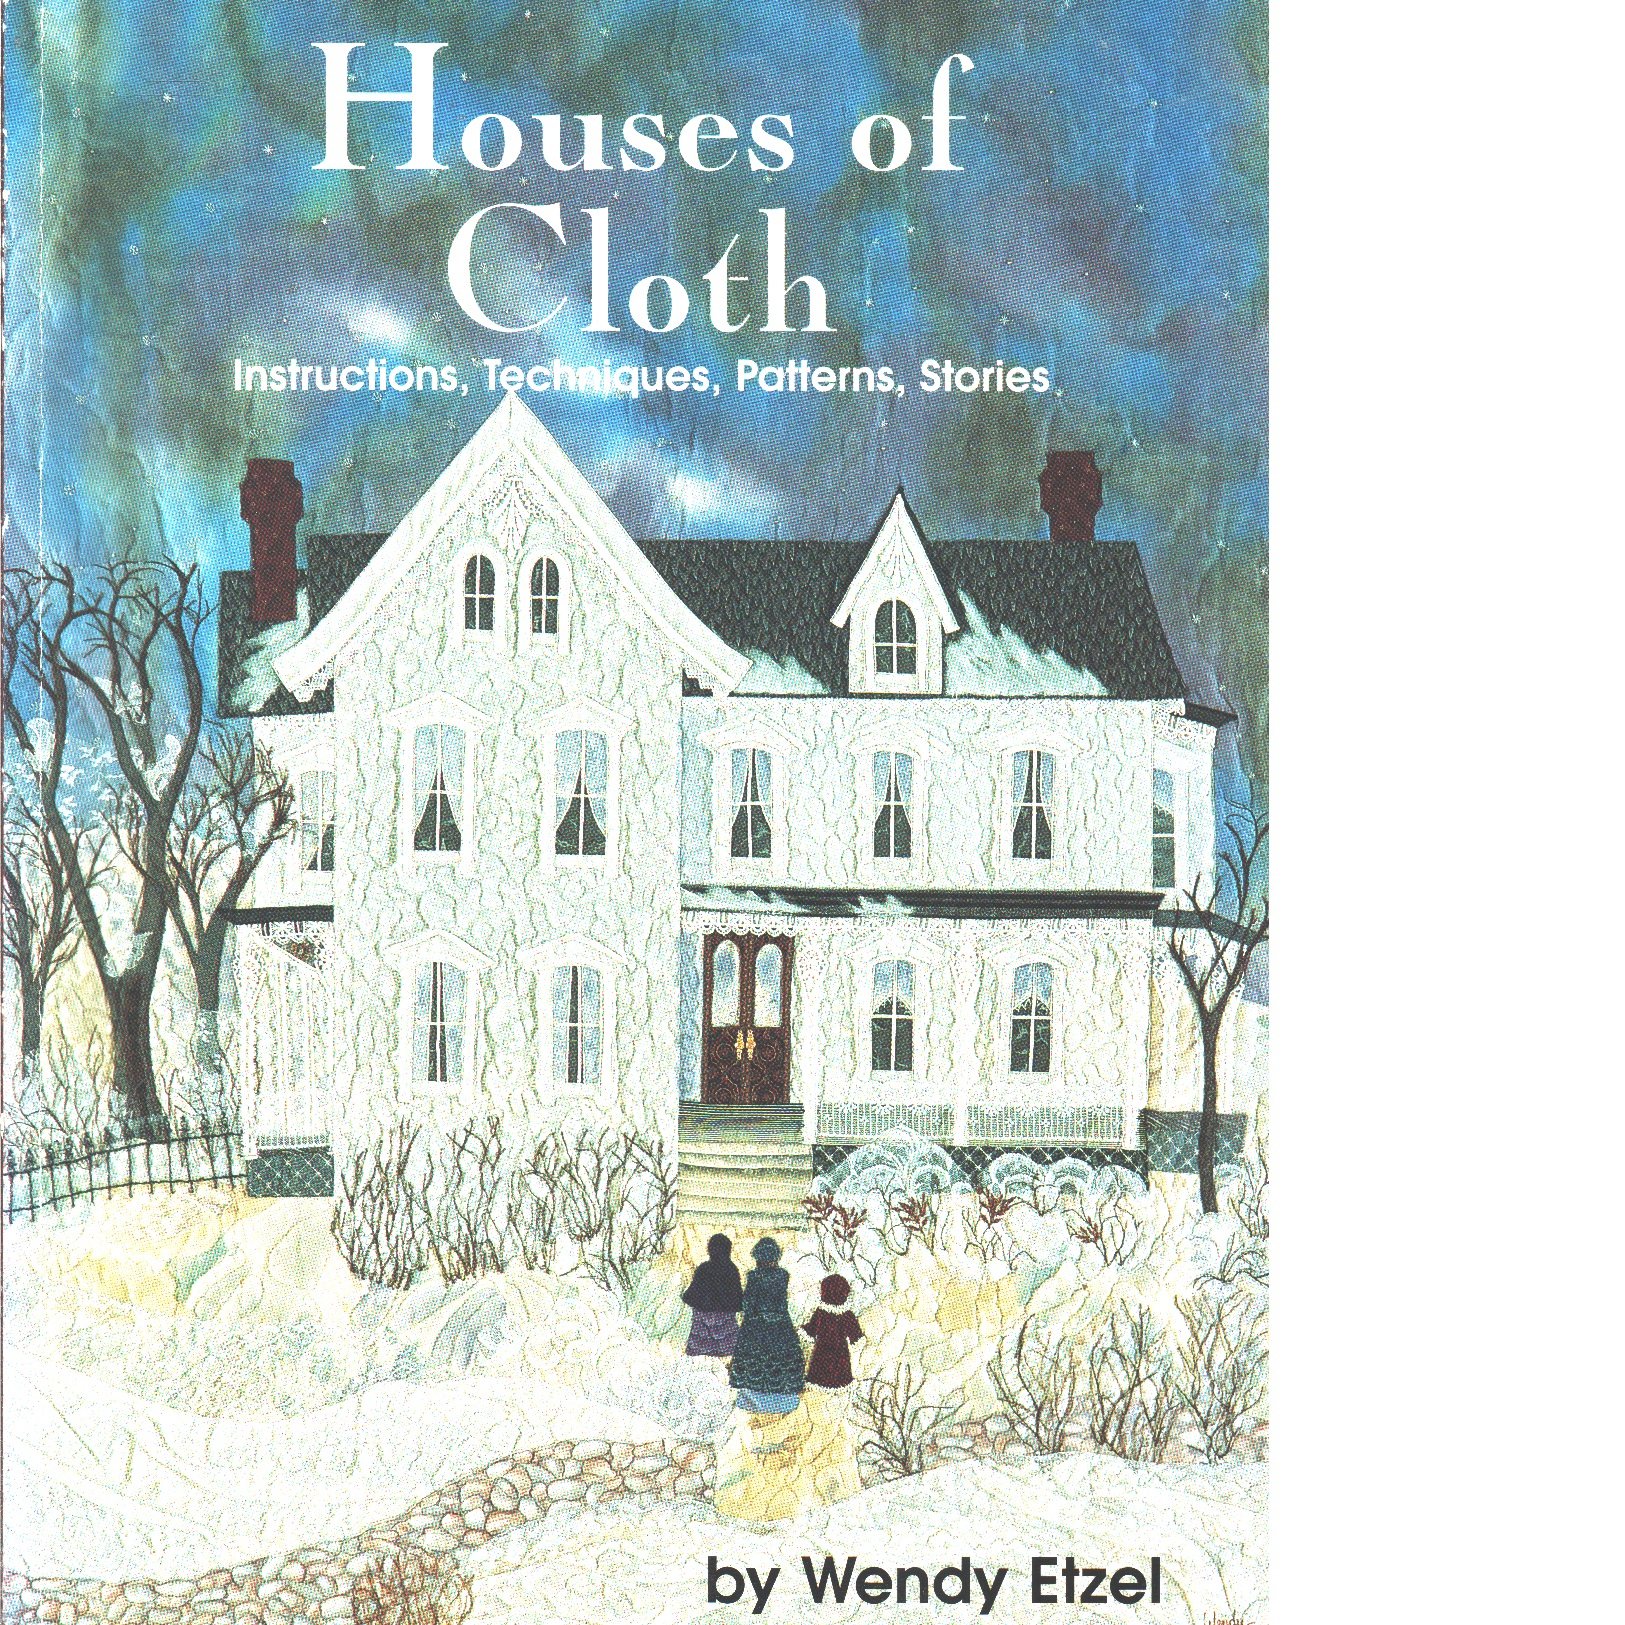 Houses of Cloth: Instructions, Techniques, Patterns, Stories - Etzel, Wendy